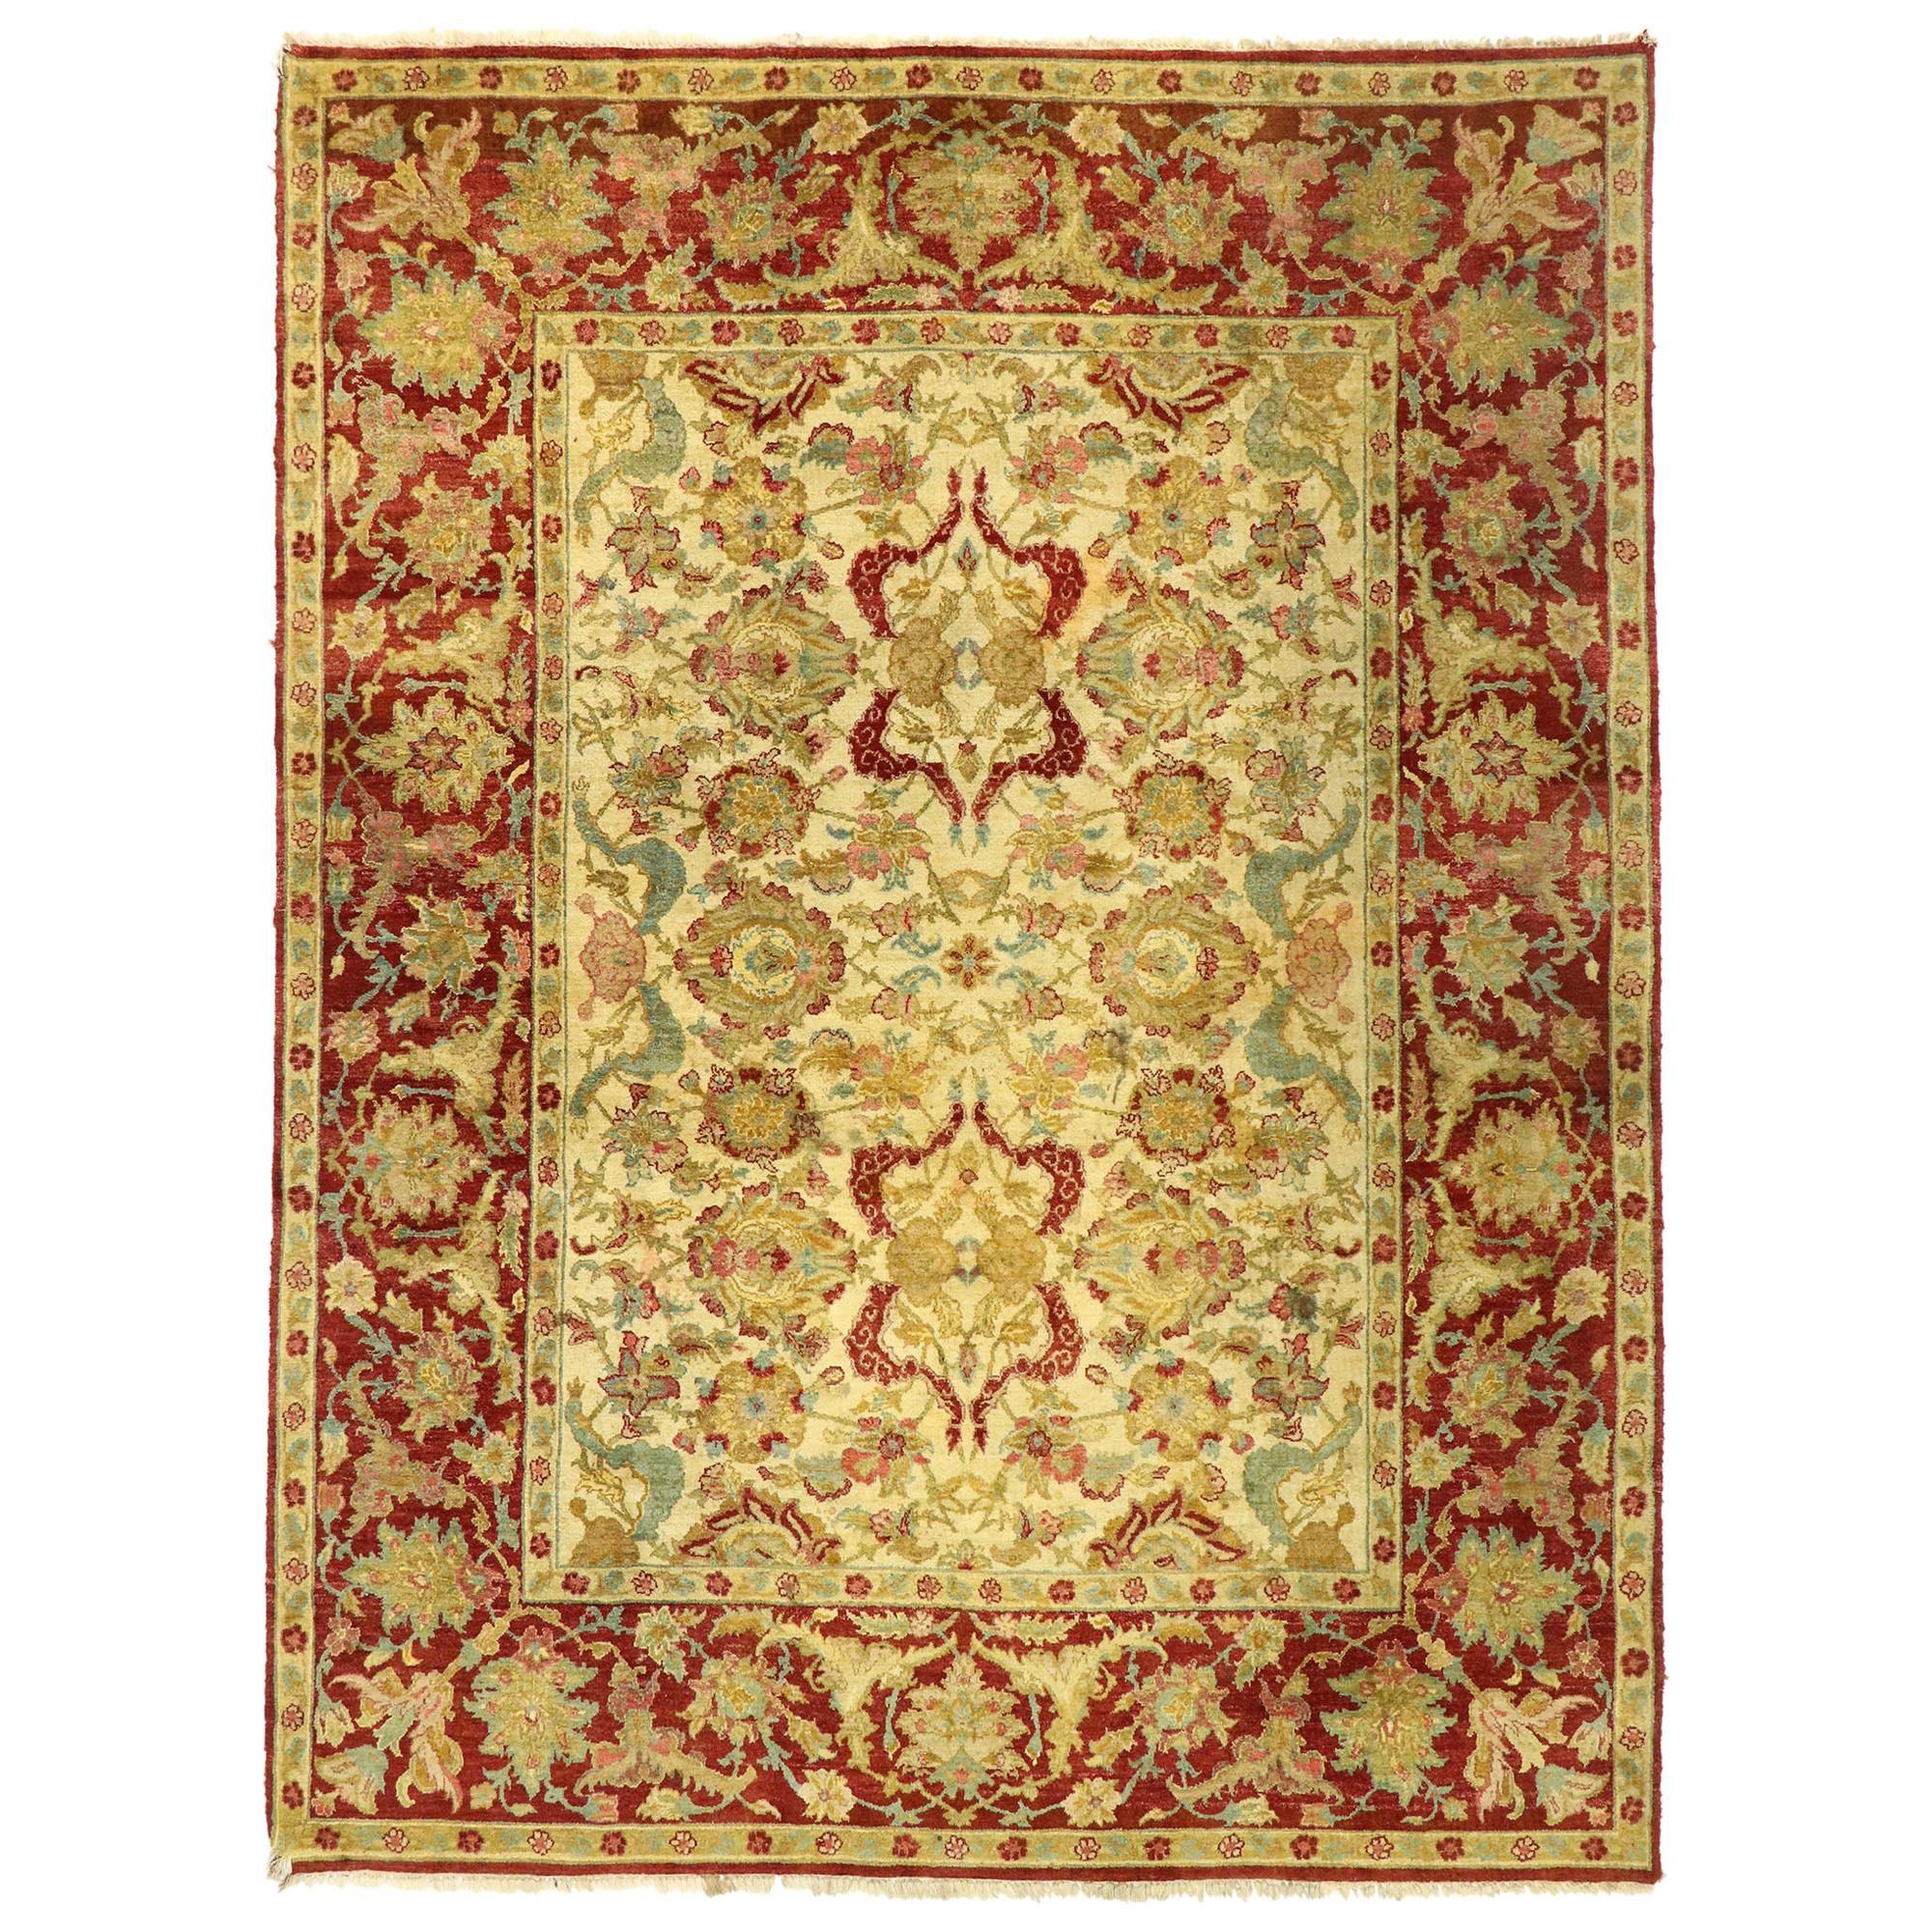 Vintage Indian Rug with Arts & Crafts Style Inspired by William Morris